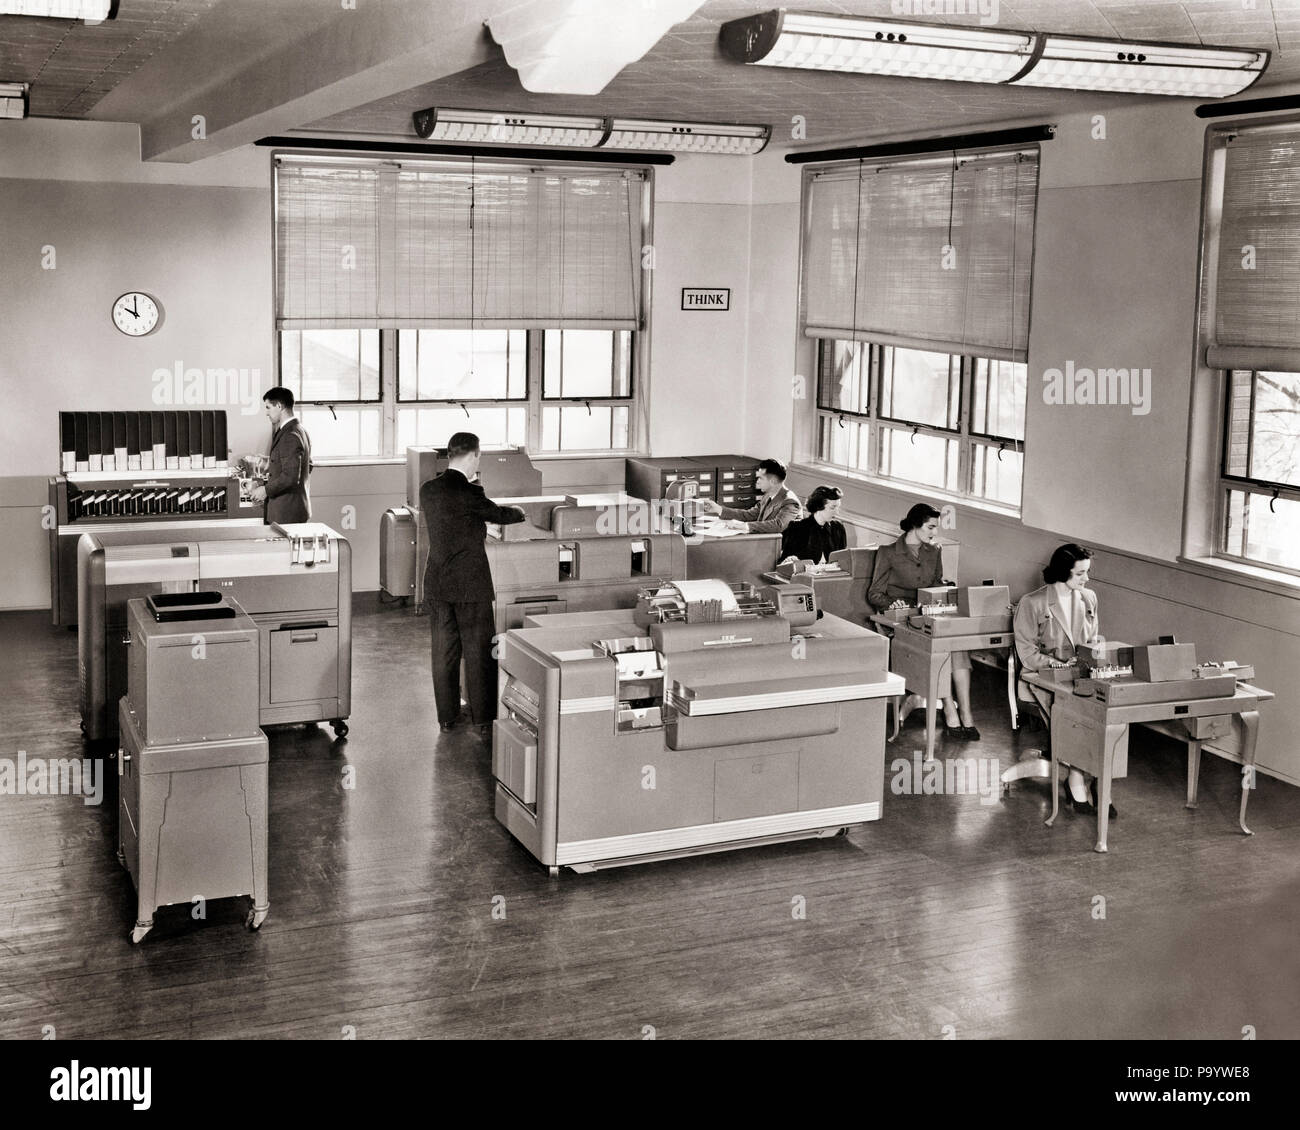 1950s THINK SIGN ON WALL IBM OFFICE INTERIOR MEN WOMEN WORKING EARLY DATA PROCESSING INSTALLATION INFORMATION SYSTEM TECHNOLOGY - q74730 CPC001 HARS SPEED FIVE HISTORY FEMALES 5 IBM GROWNUP COMMUNICATING COPY SPACE FULL-LENGTH LADIES COMPUTERS PERSONS INSPIRATION GROWN-UP MALES PROFESSION CONTEMPLATING B&W WORK PLACE DATA DECORATION PROCESSING DECOR OCCUPATION EARLY STRENGTH CUSTOMER SERVICE NETWORKING KNOWLEDGE POWERFUL PROGRESS THINK INNOVATION PRIDE OCCUPATIONS HIGH TECH PONDER PONDERING STYLISH TRADEMARK CONTEMPLATIVE COMMUNICATE CONTEMPLATE COOPERATION CREATIVITY HIGH-TECH IDEAS MID-ADULT - Stock Image